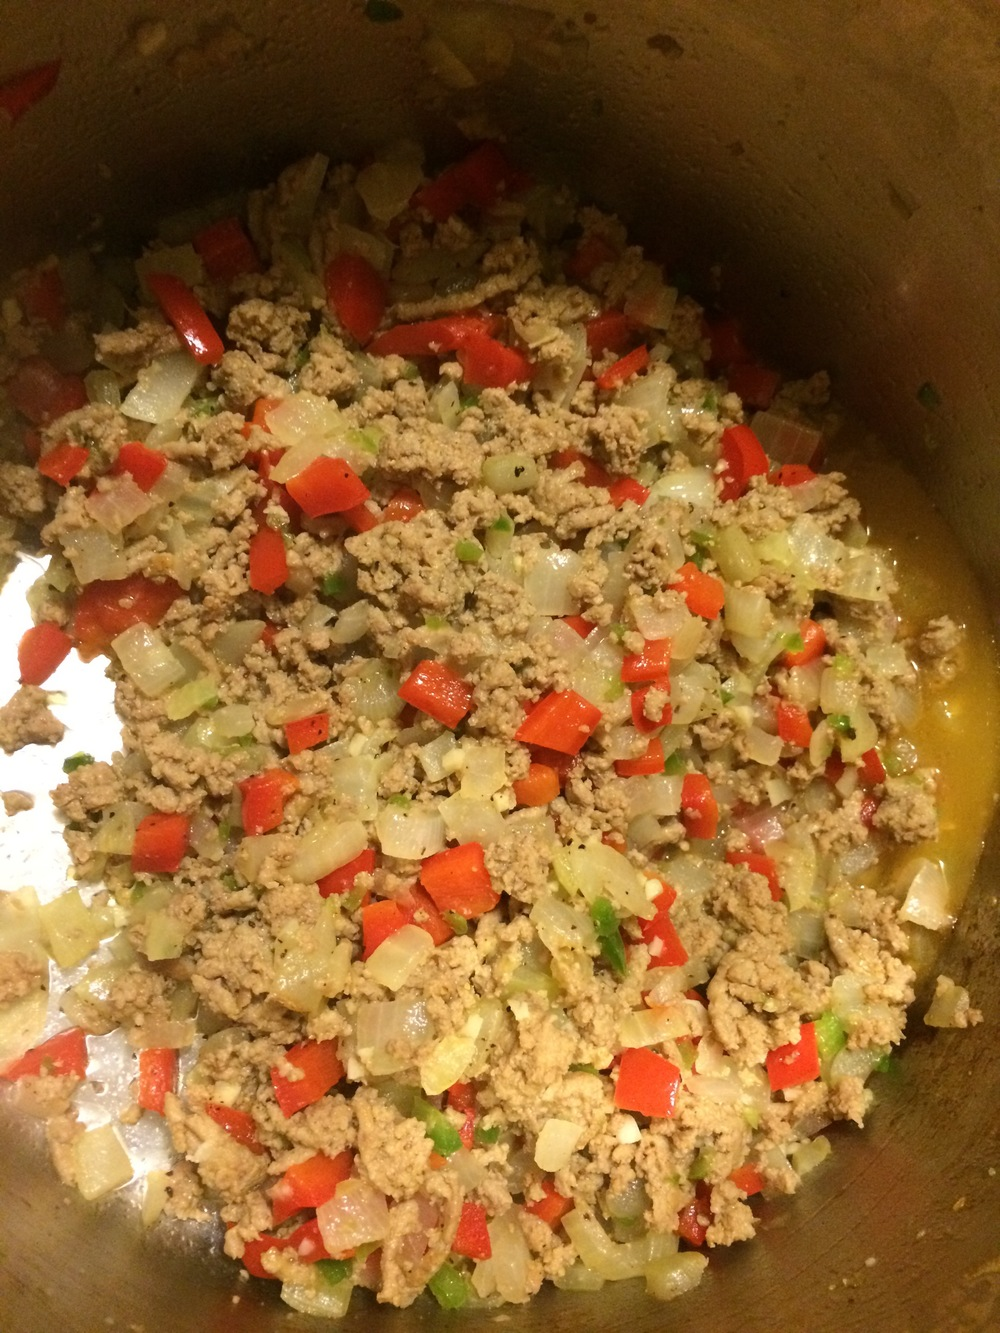 Cooked turkey & vegetables, before adding spices & tomato paste